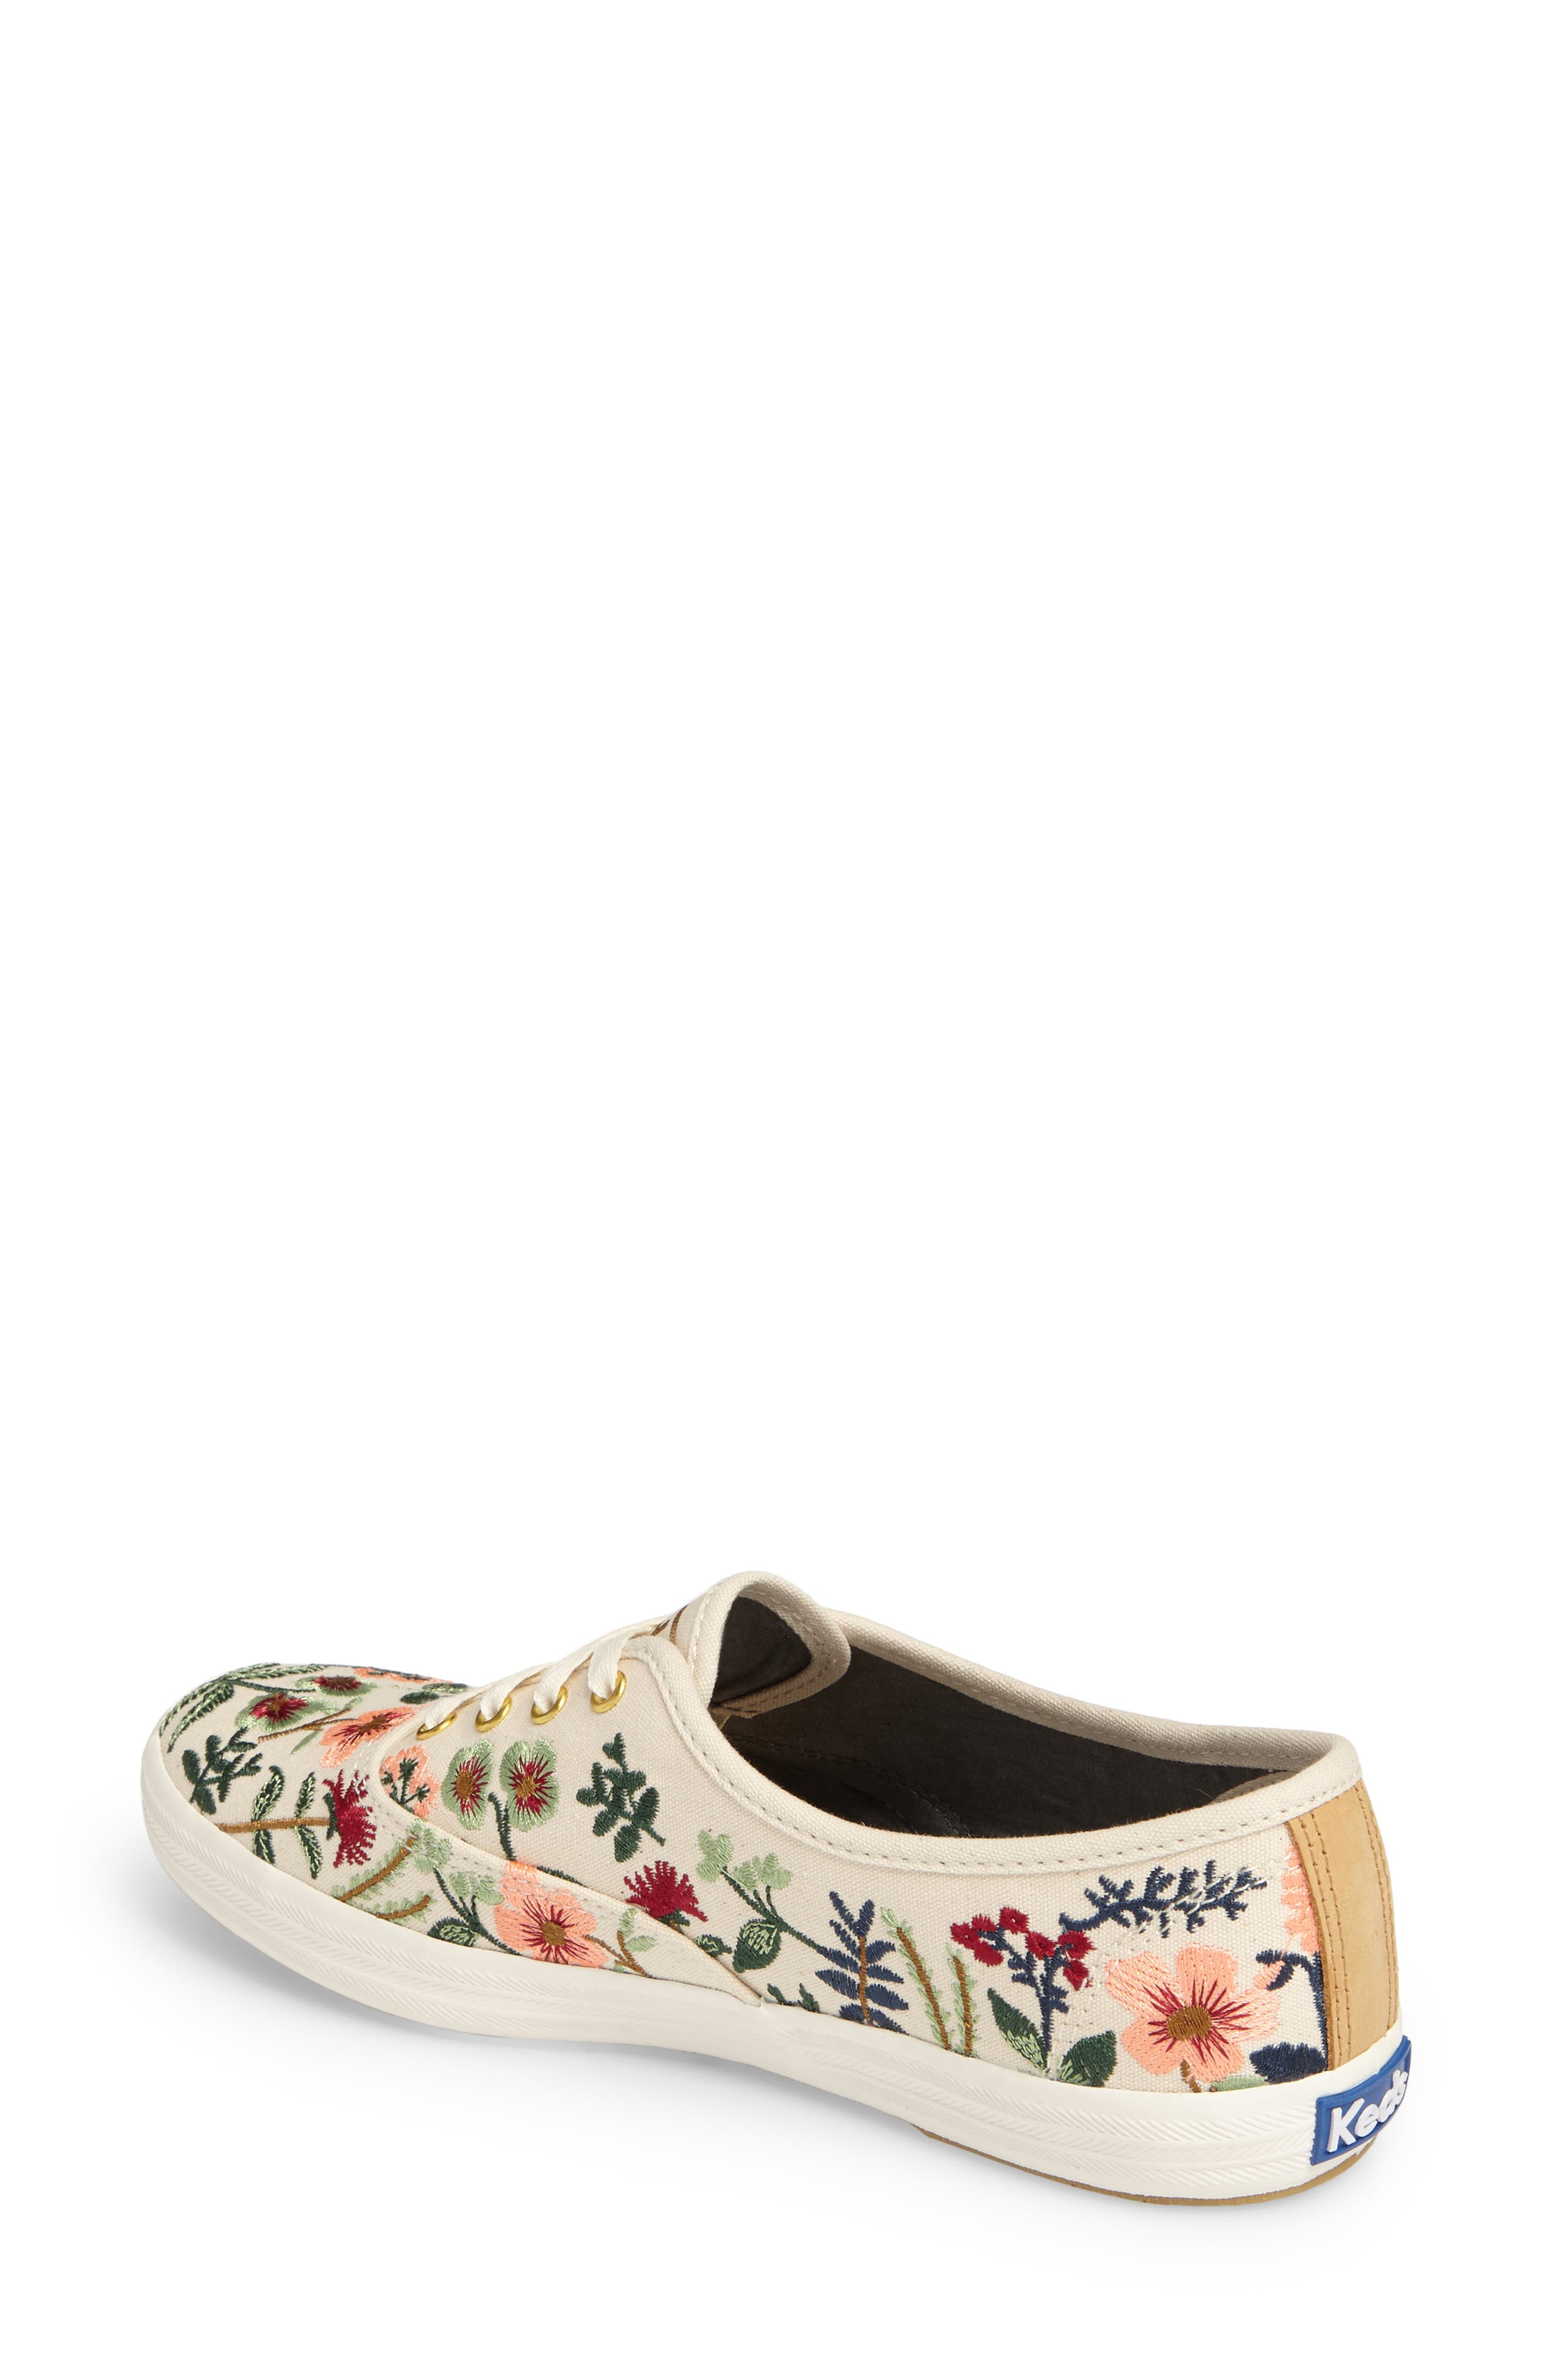 Alternate Image 2  - Keds® x Rifle Paper Co. Herb Garden Embroidered Sneaker (Women)